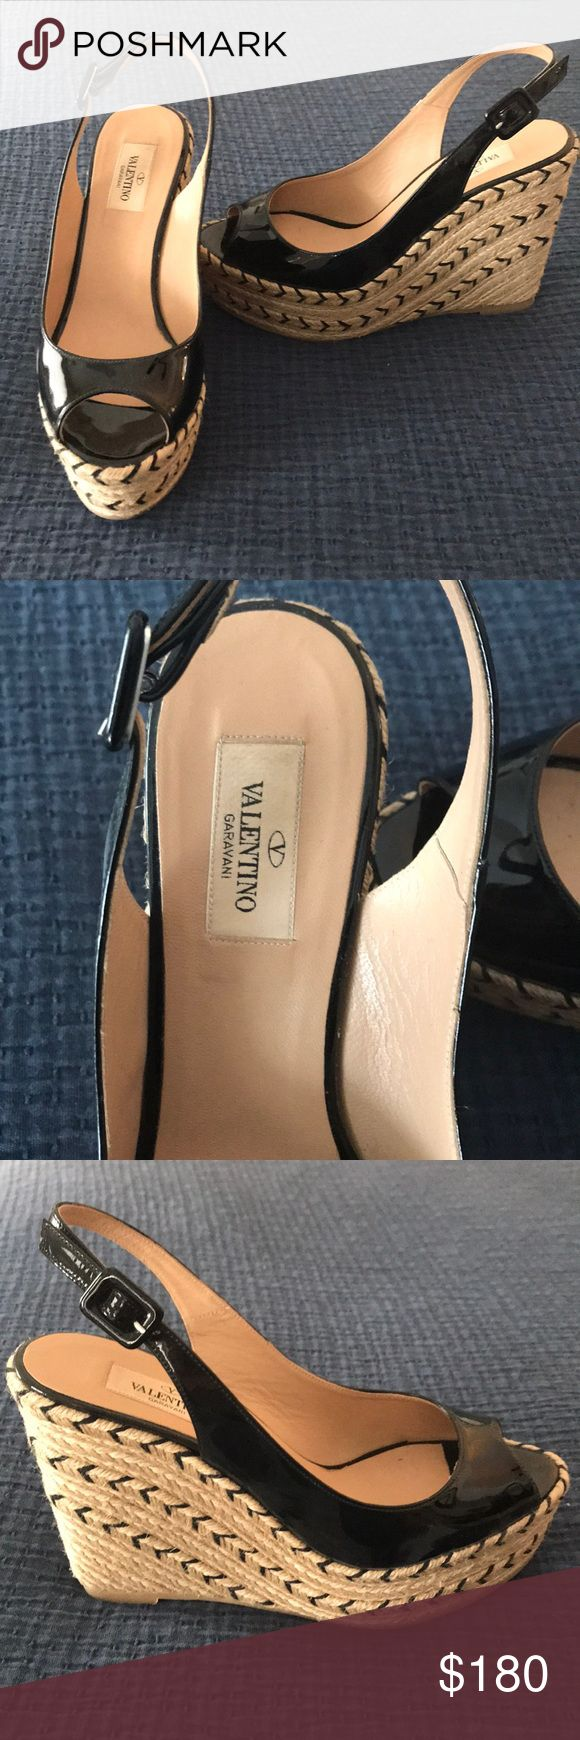 Valentino Wedge Espadrilles Worn only once, beautiful shoe! Patent leather upper with woven platform wedge. Valentino Shoes Wedges